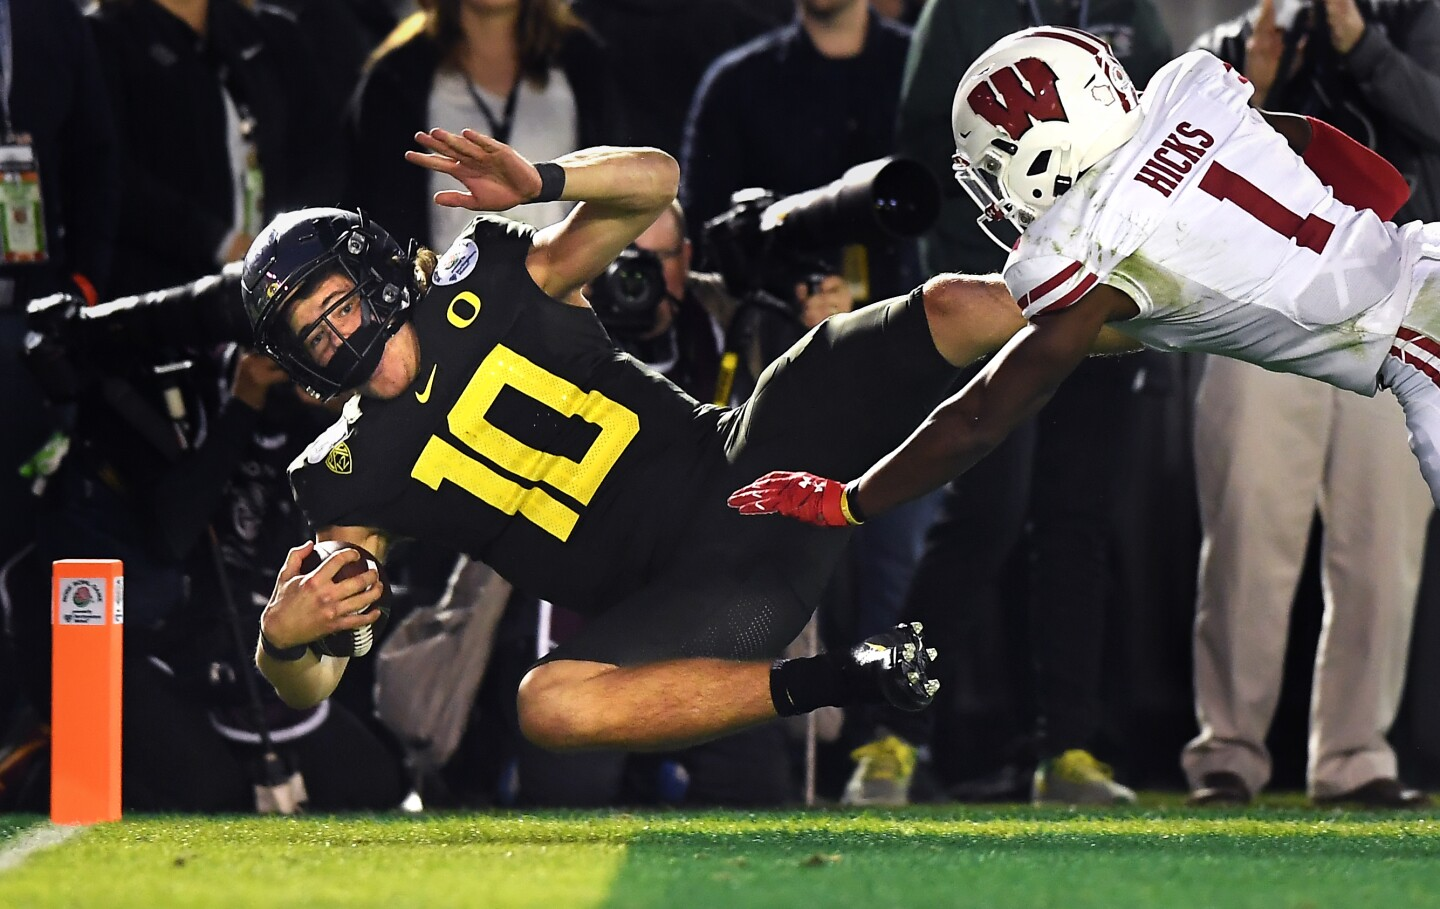 PASADENA, CALIFORNIA JANUARY 1, 2020-Oregon quarterback Justin Herbert scores the go-ahead touchdown against Wisconsin cornerback Faion Hicks in the 4th quarter at the Rose Bowl in Pasadena Wednesday. (Wally Skalij/Los Angerles Times)